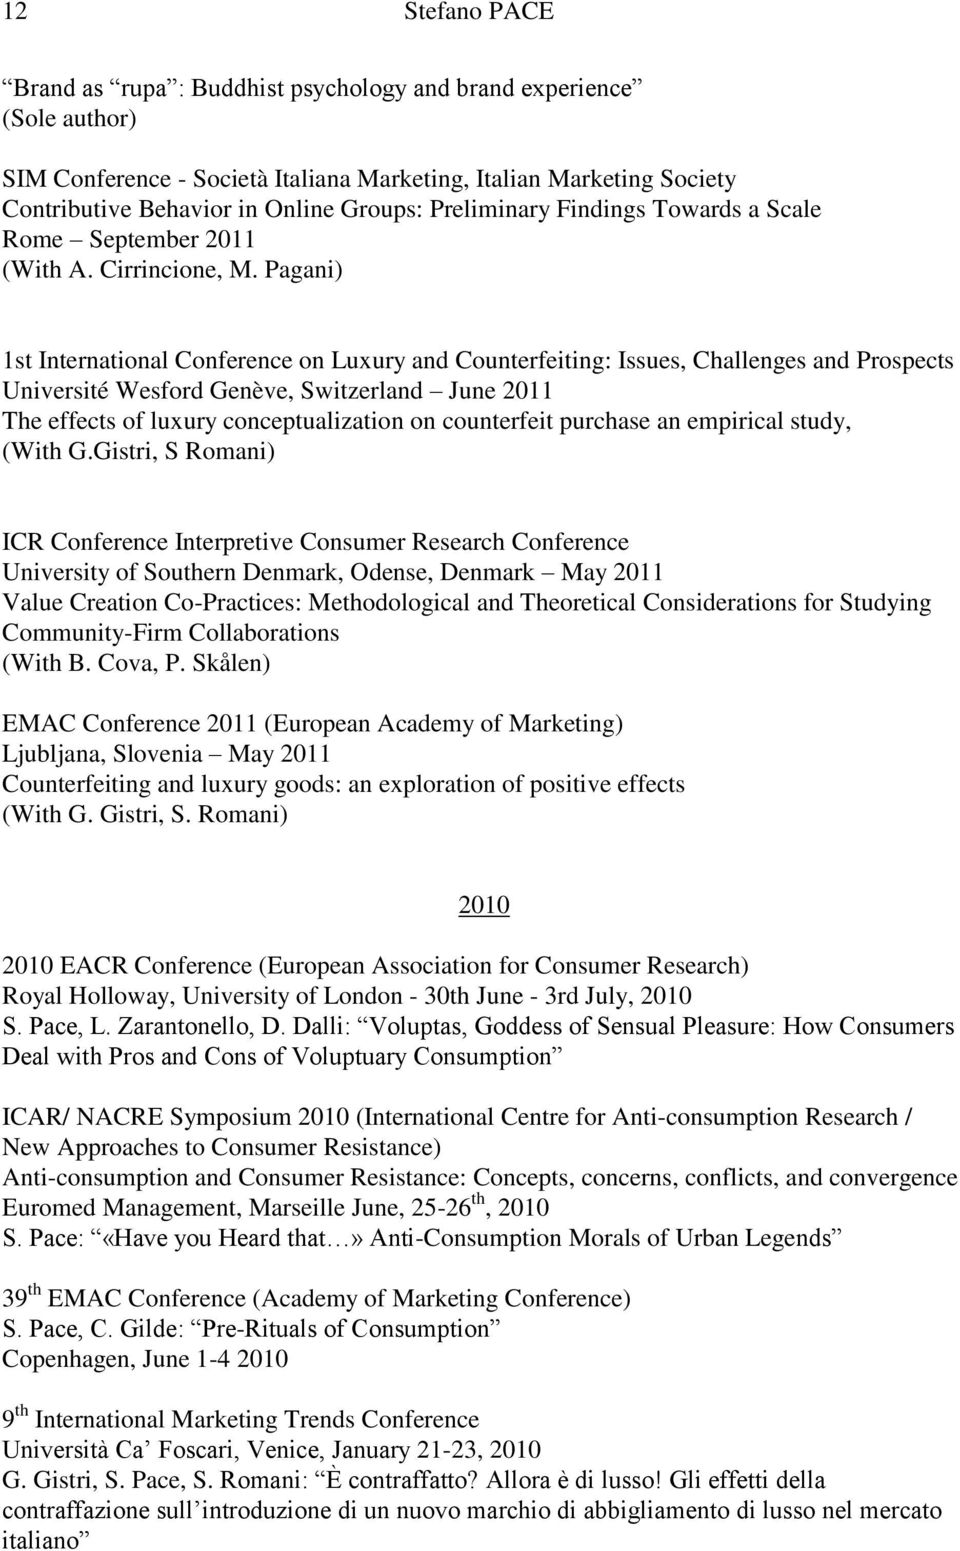 Pagani) 1st International Conference on Luxury and Counterfeiting: Issues, Challenges and Prospects Université Wesford Genève, Switzerland June 2011 The effects of luxury conceptualization on